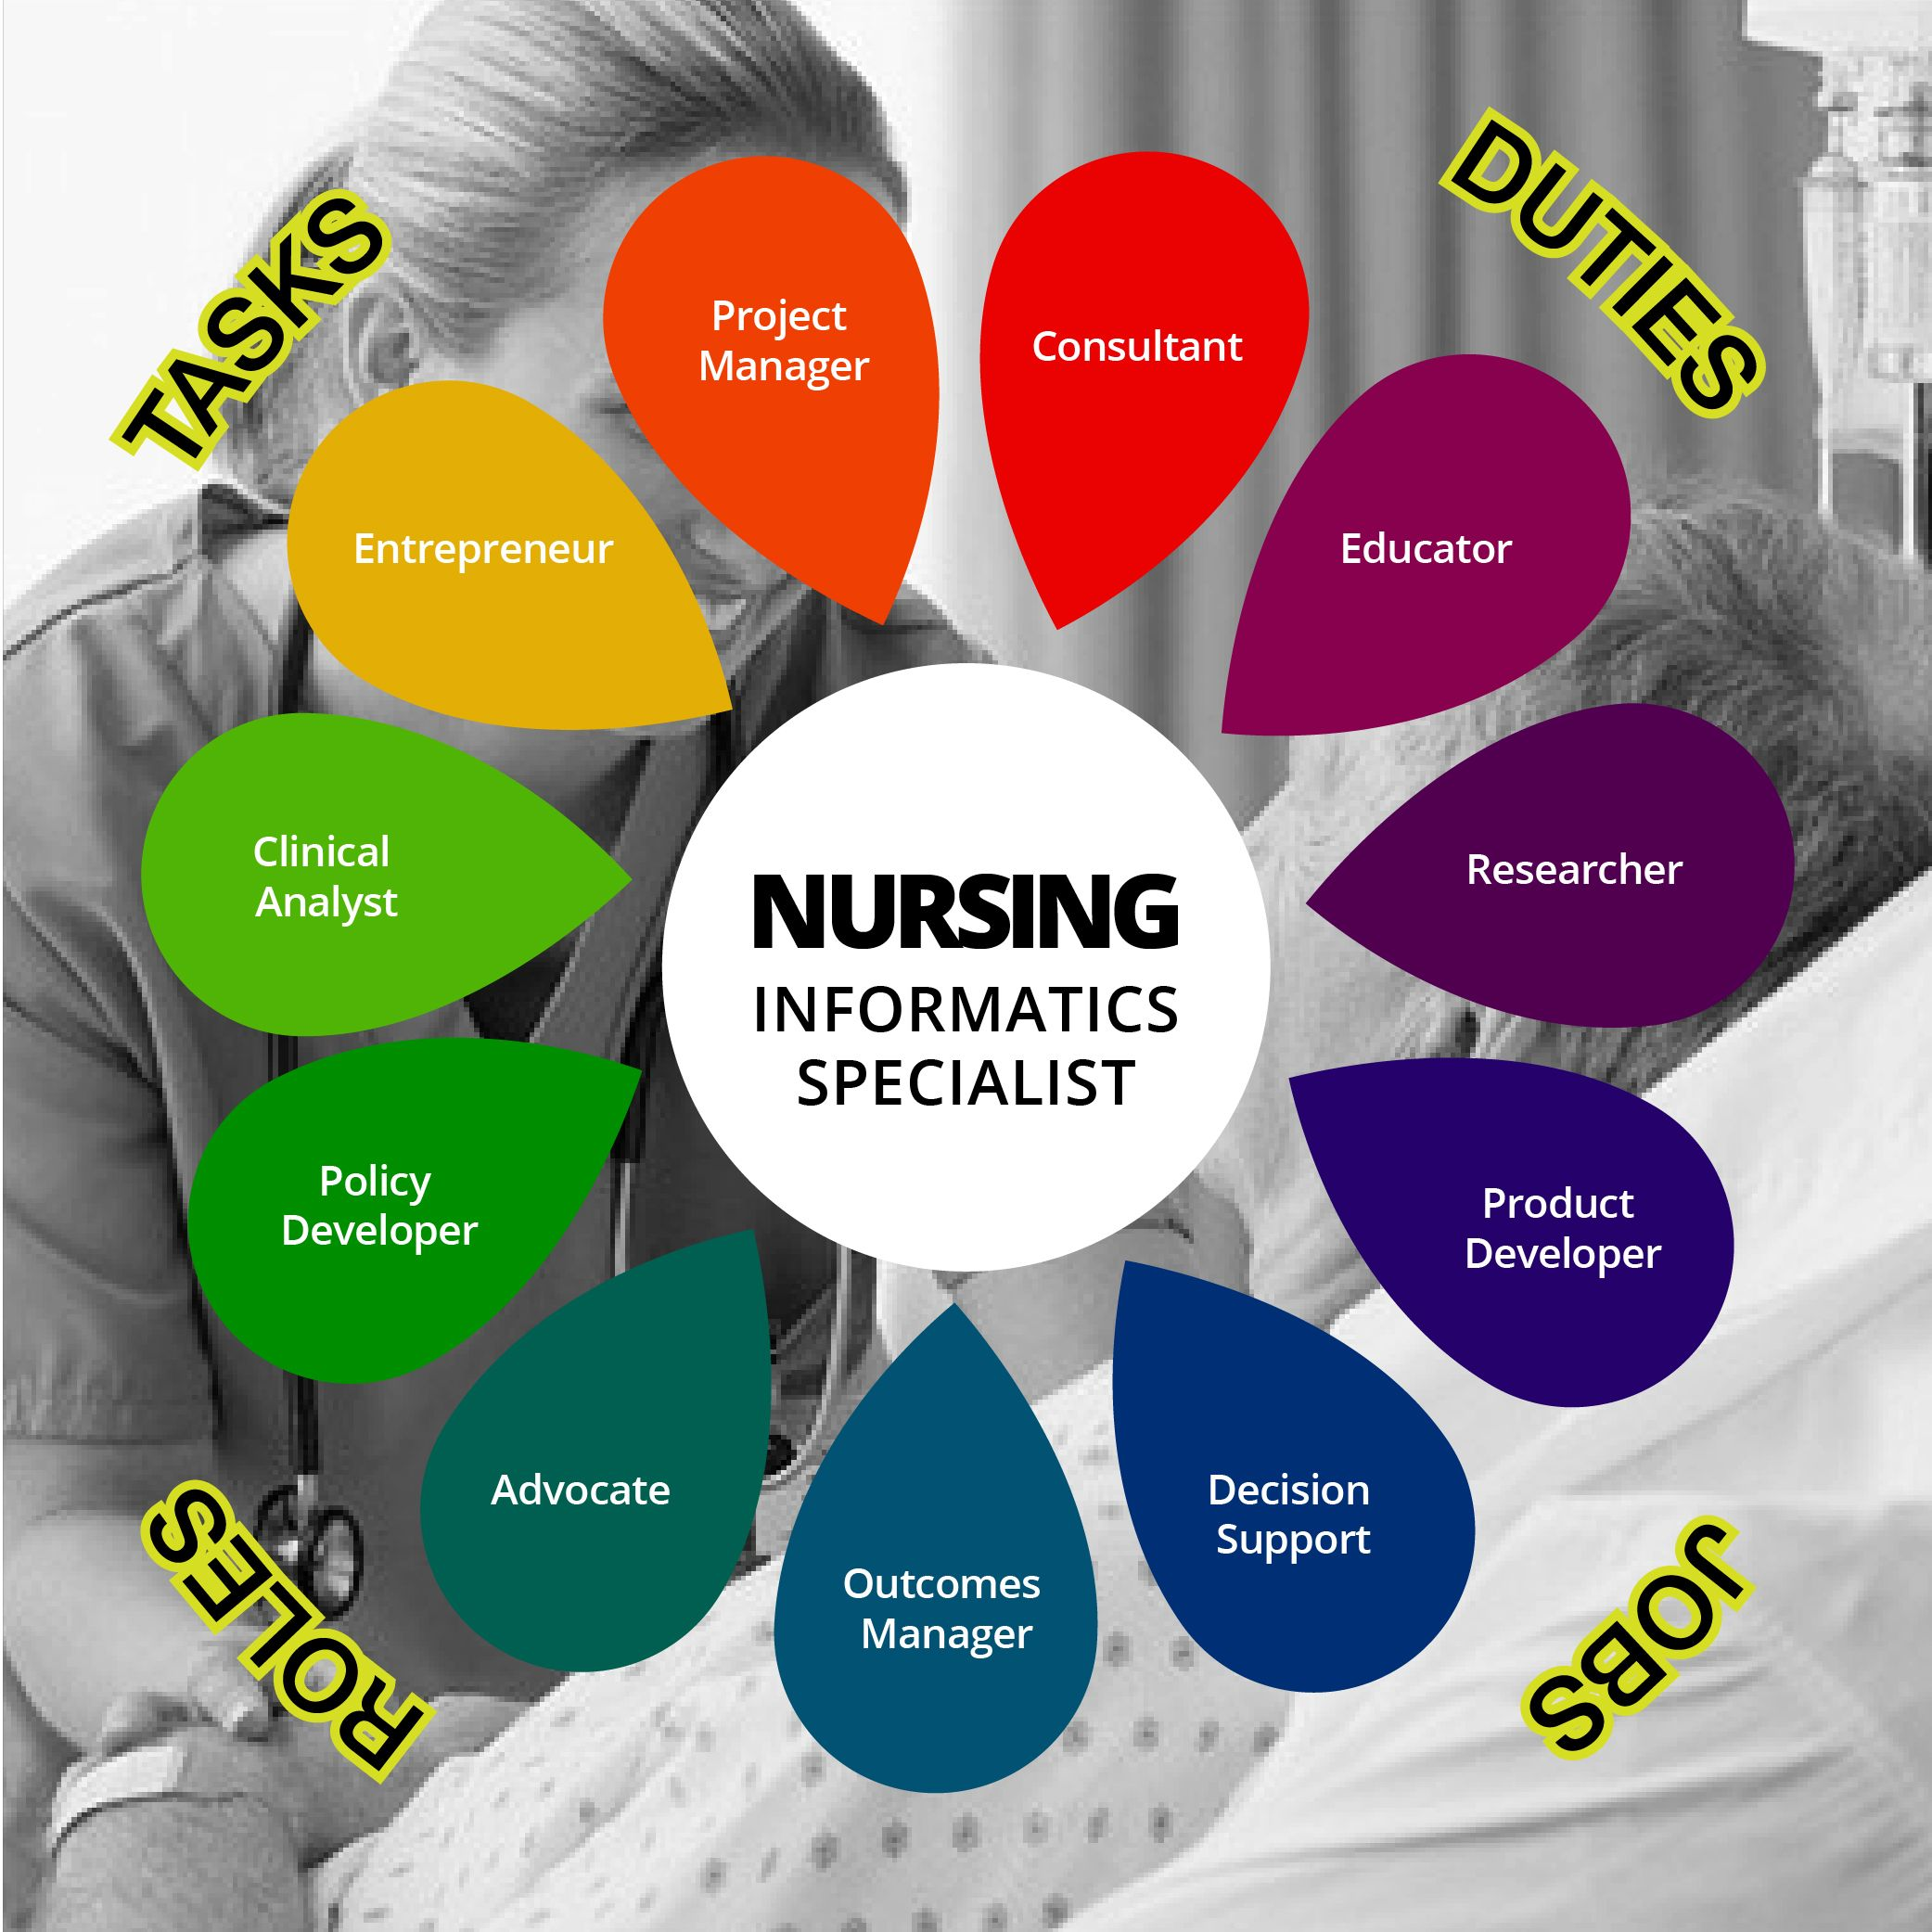 Nursing Informatics Specialist Infographic Is One Of The Best